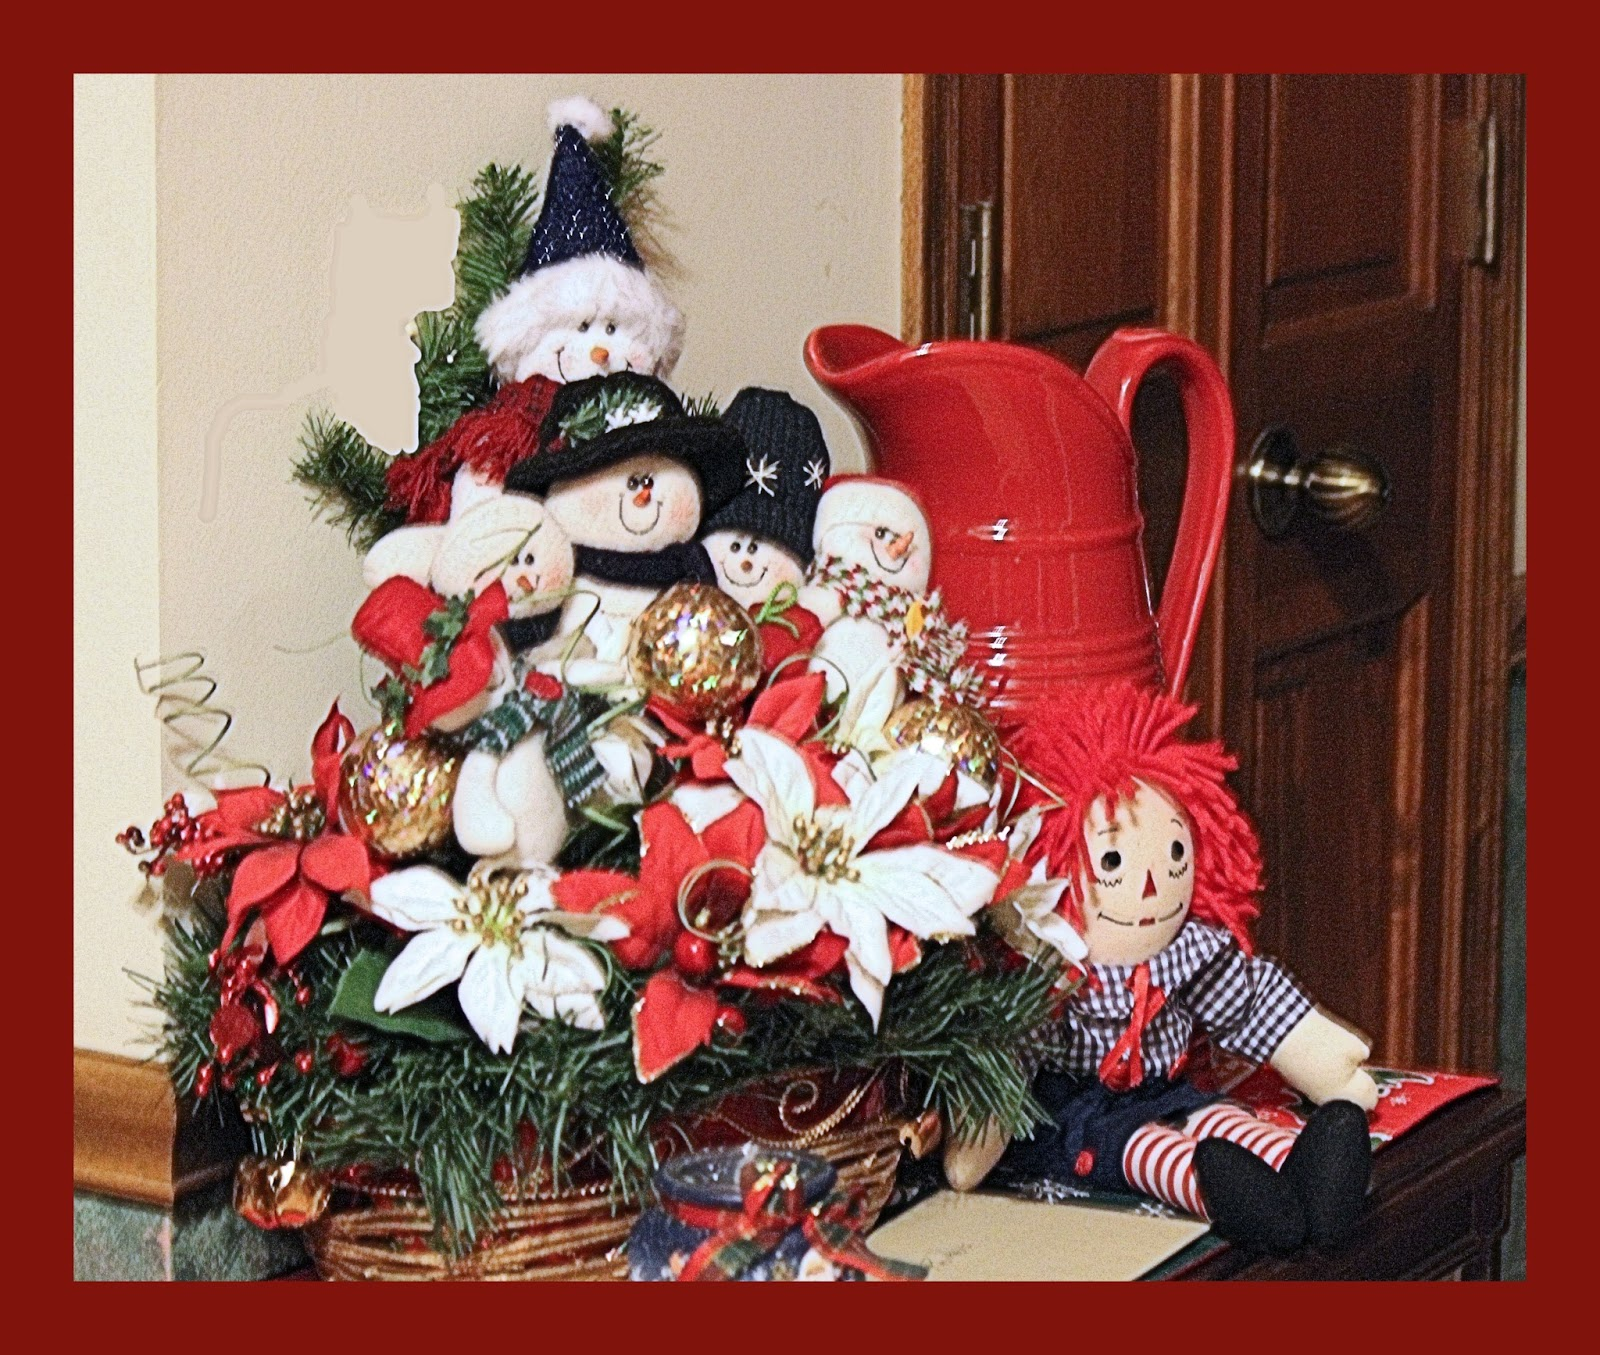 Christian Images In My Treasure Box: Christmas Decorations